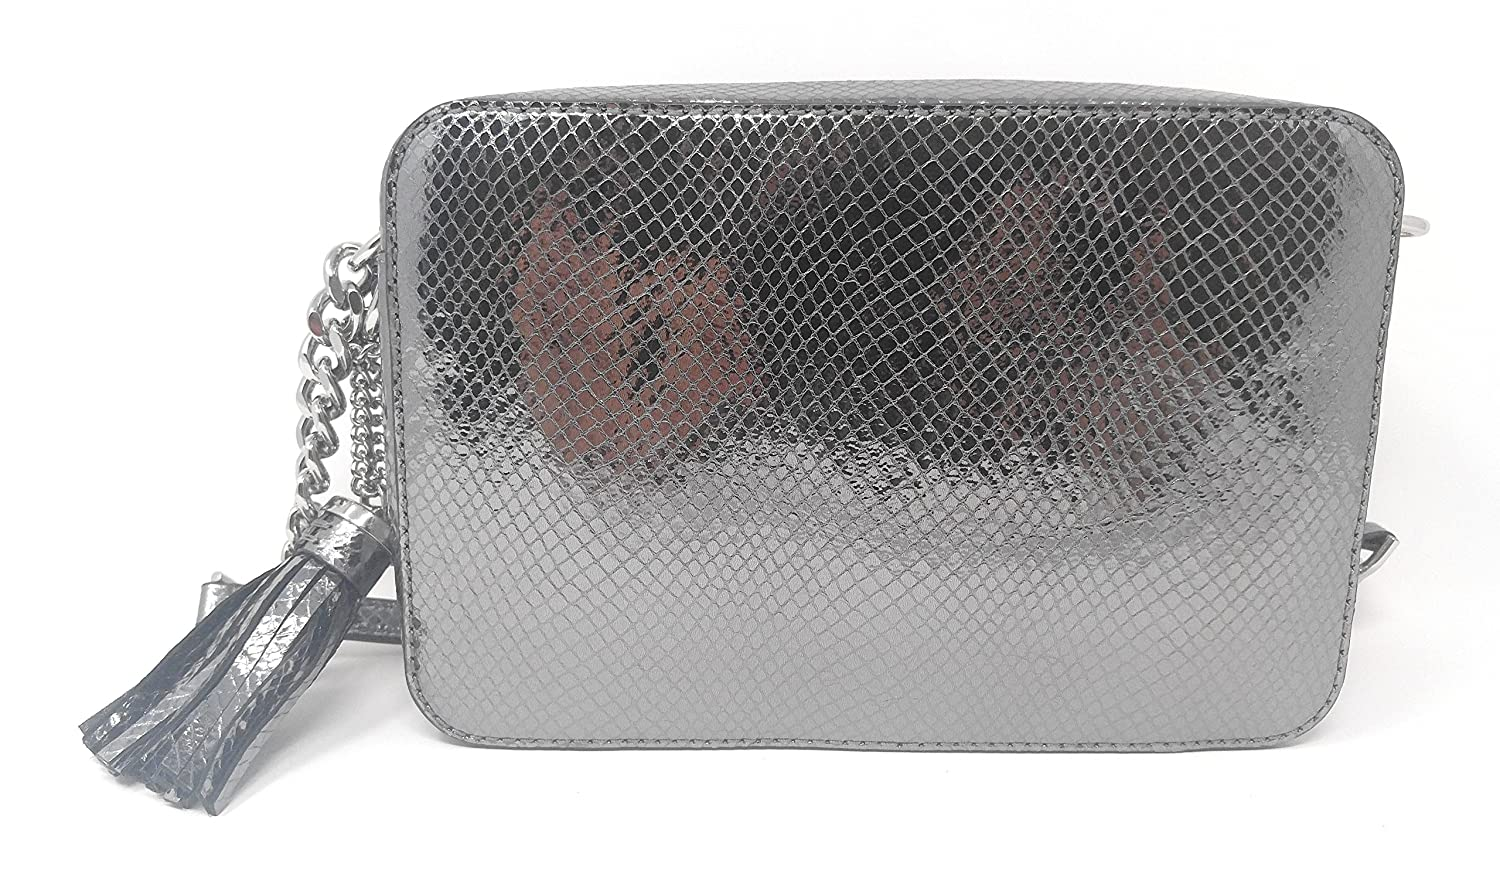 33243fcd4906 Michael Kors Ginny Medium Camera Bag Embossed Leather Light Pewter   Handbags  Amazon.com